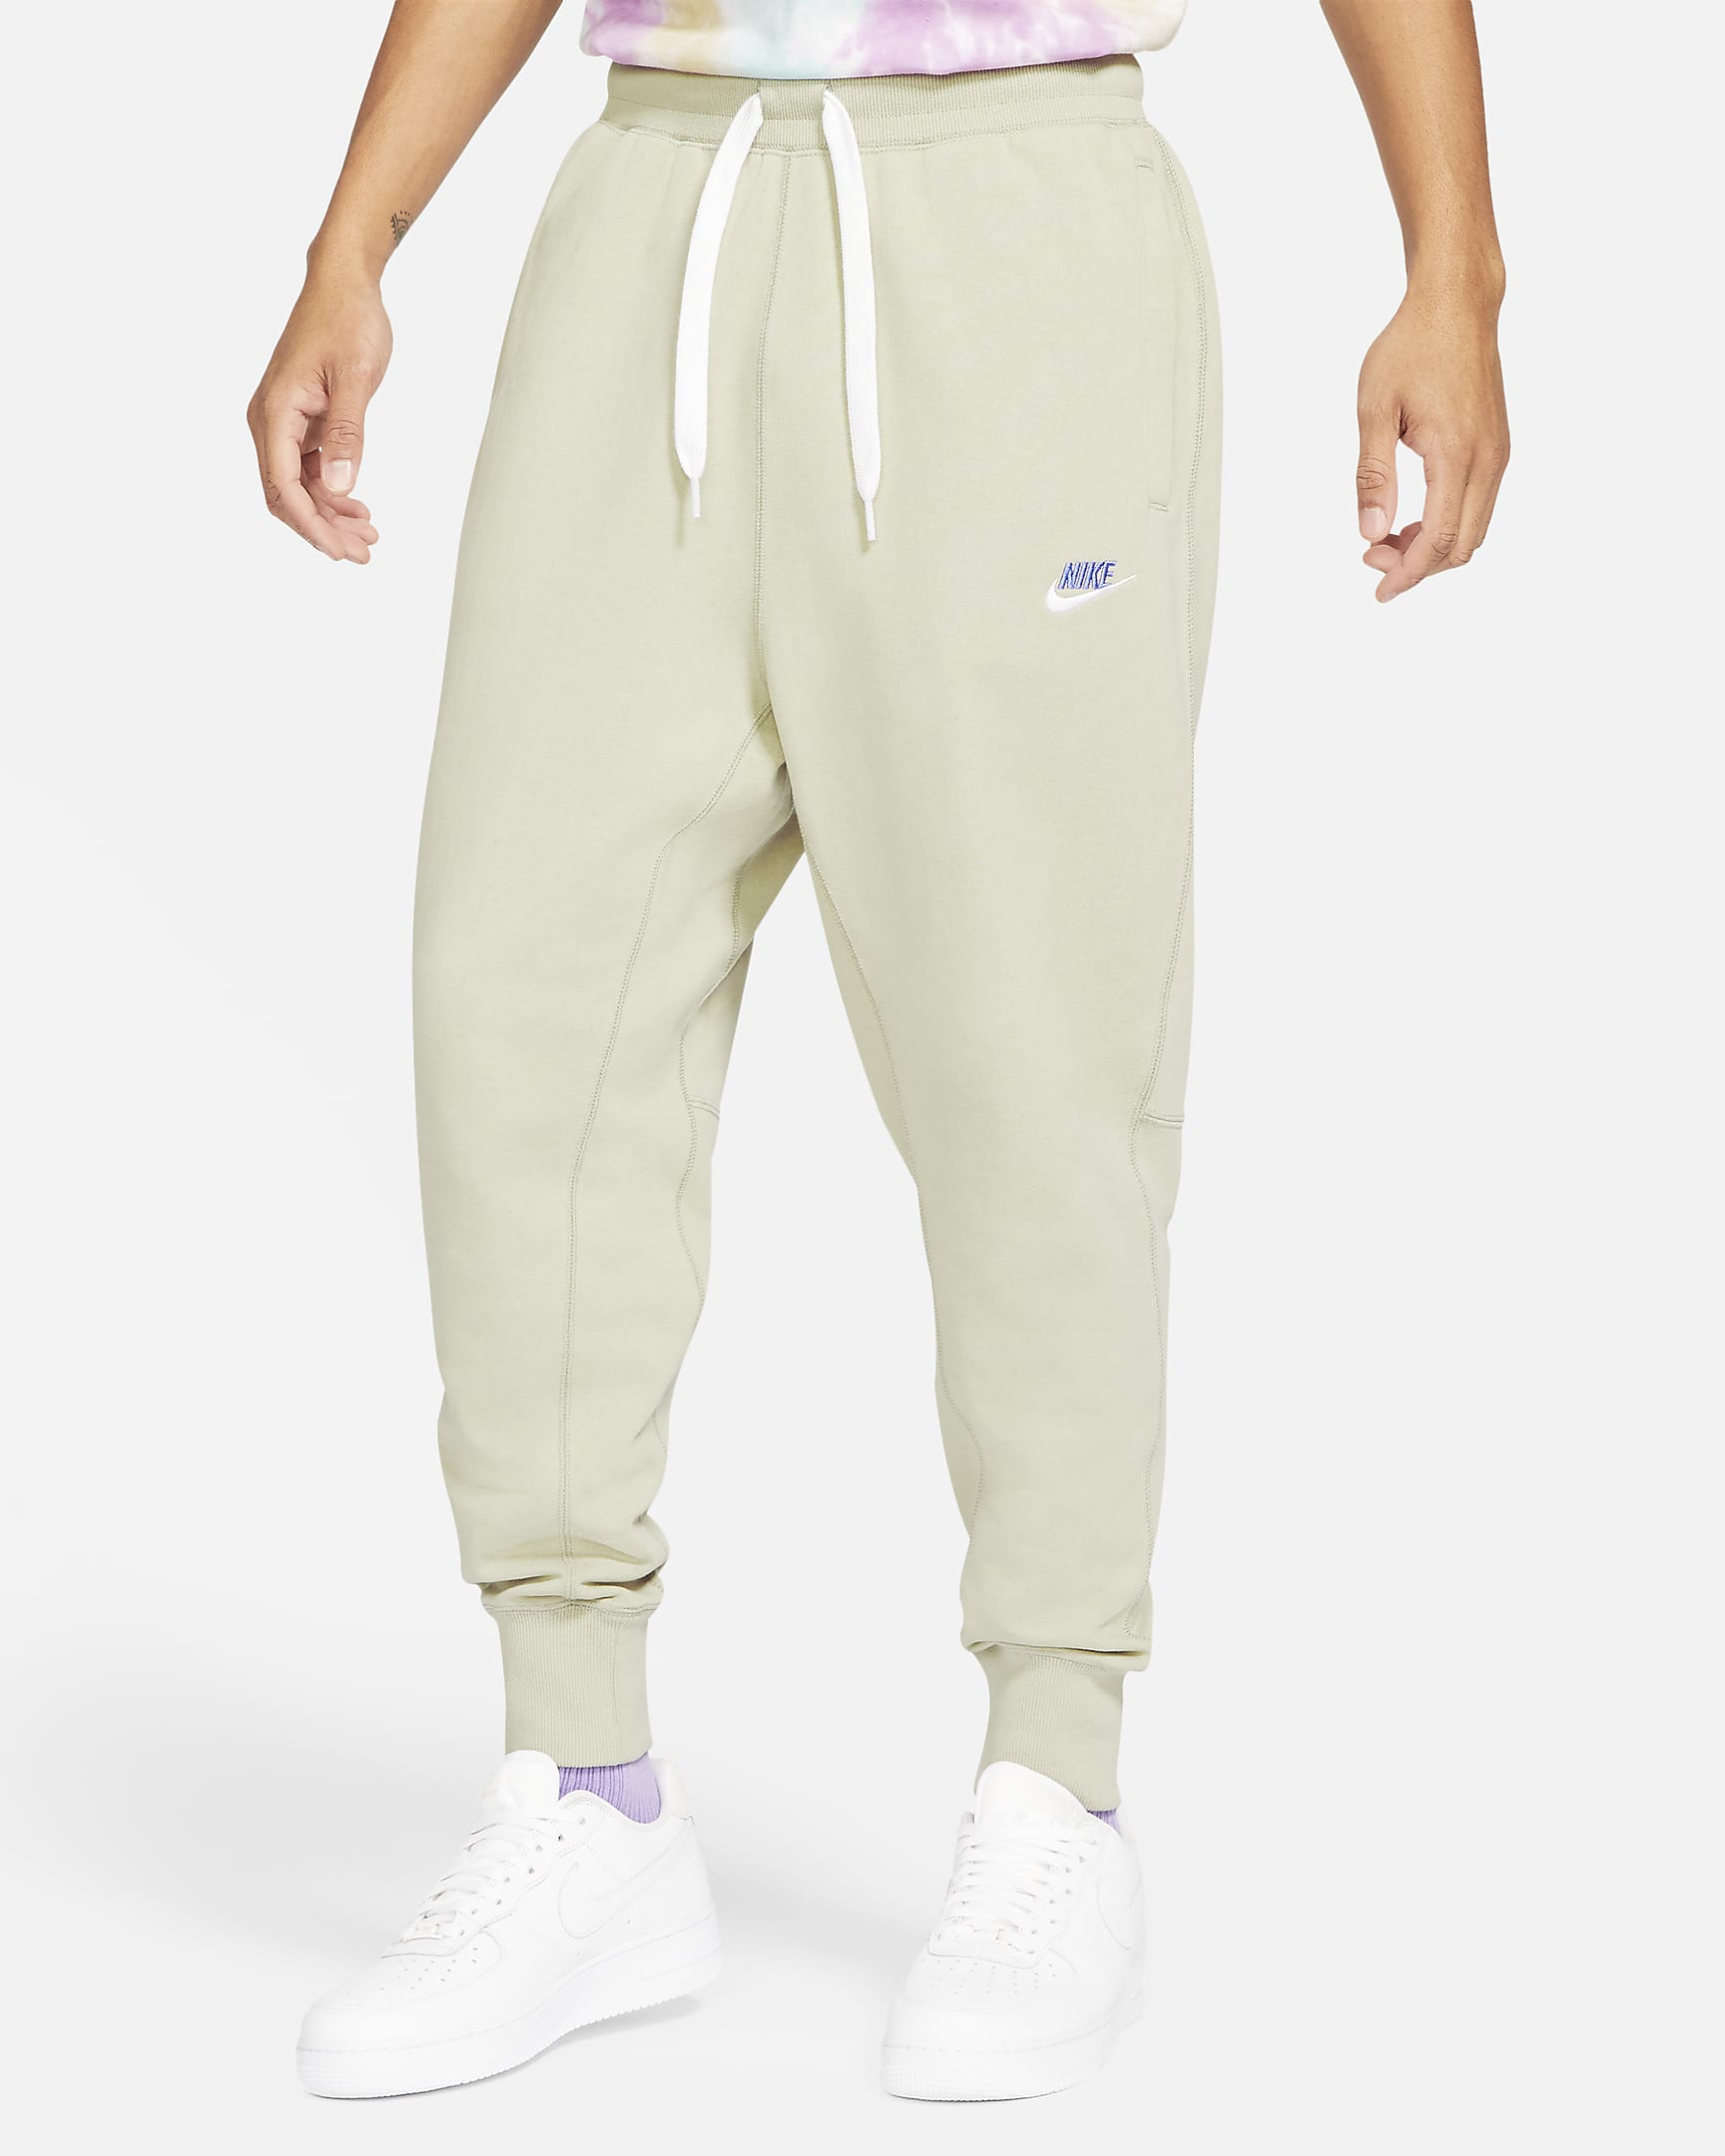 sportswear-mens-classic-fleece-pants-DgDCHh